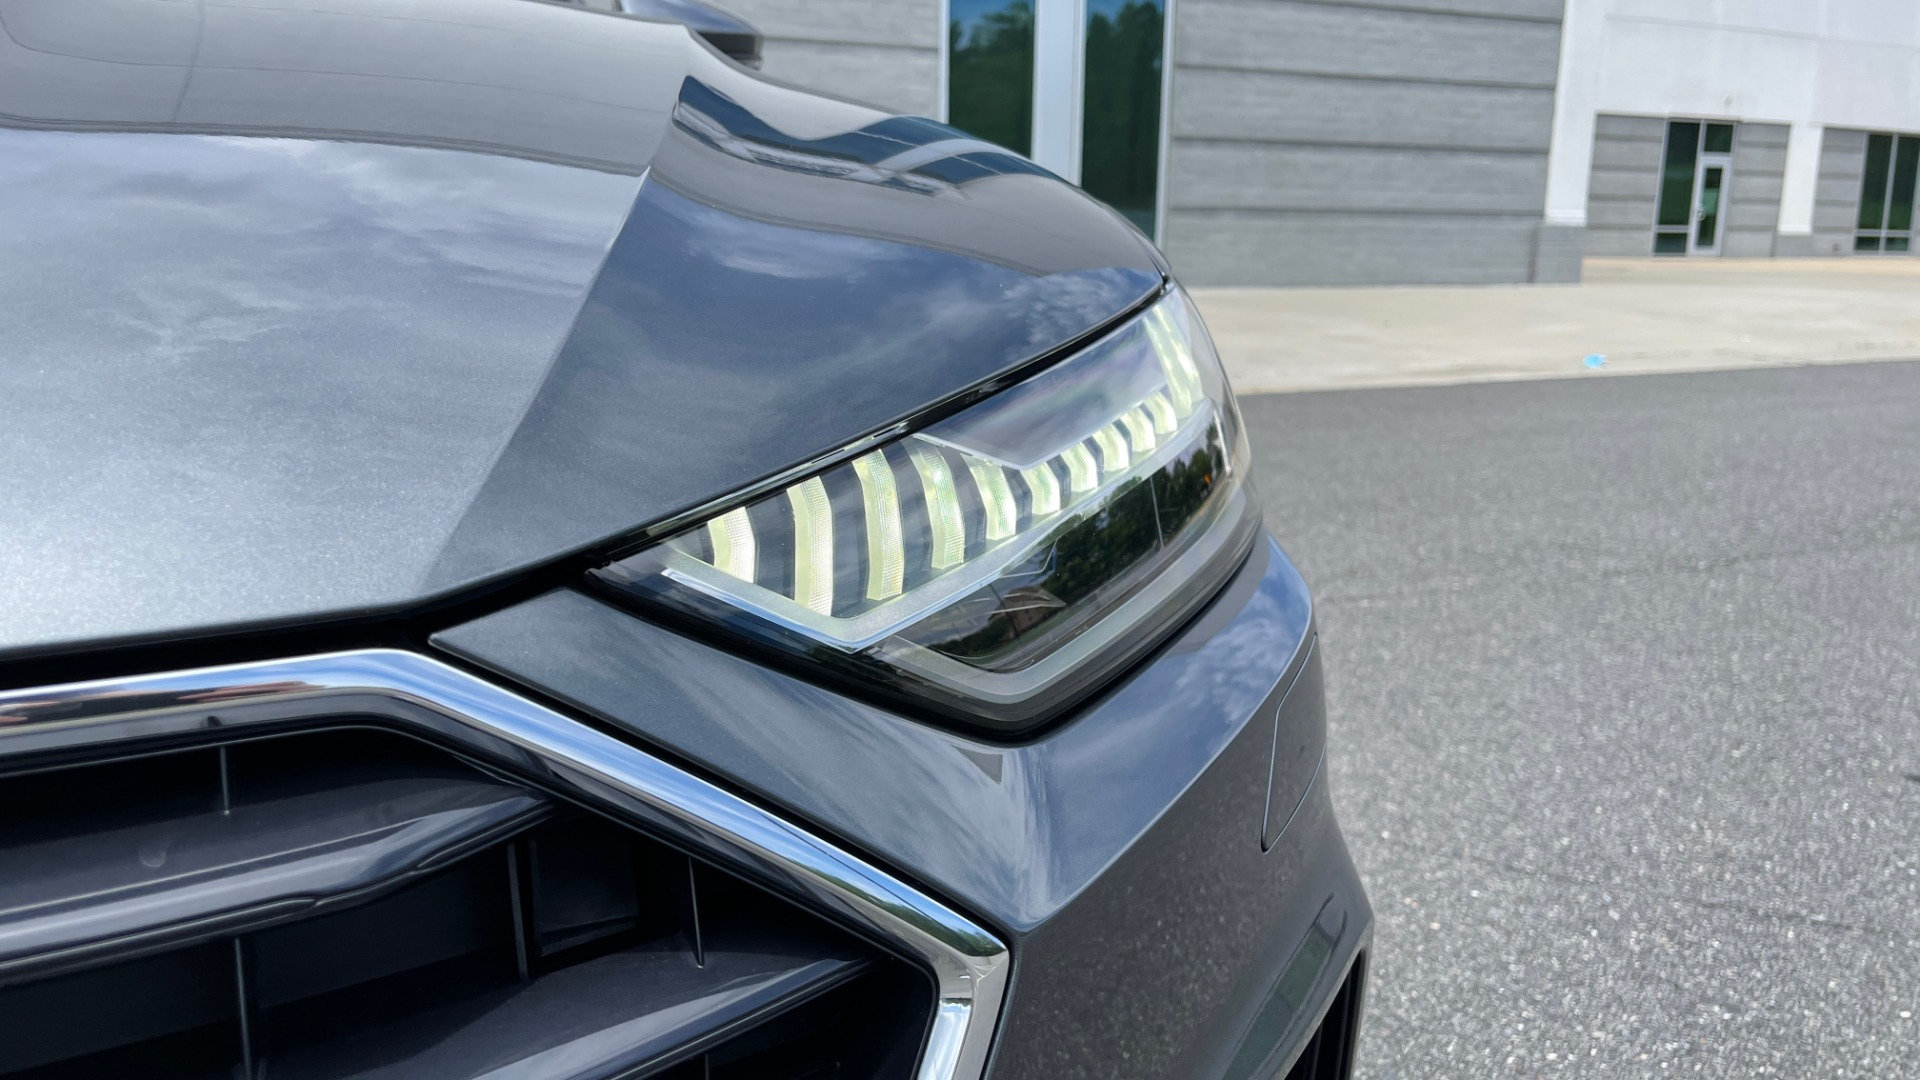 Used 2019 Audi A7 PRESTIGE 55 TFSI 3.0T / NAV / B&O SND / SUNROOF / S-LINE / 21IN WHLS / REAR for sale $66,995 at Formula Imports in Charlotte NC 28227 11